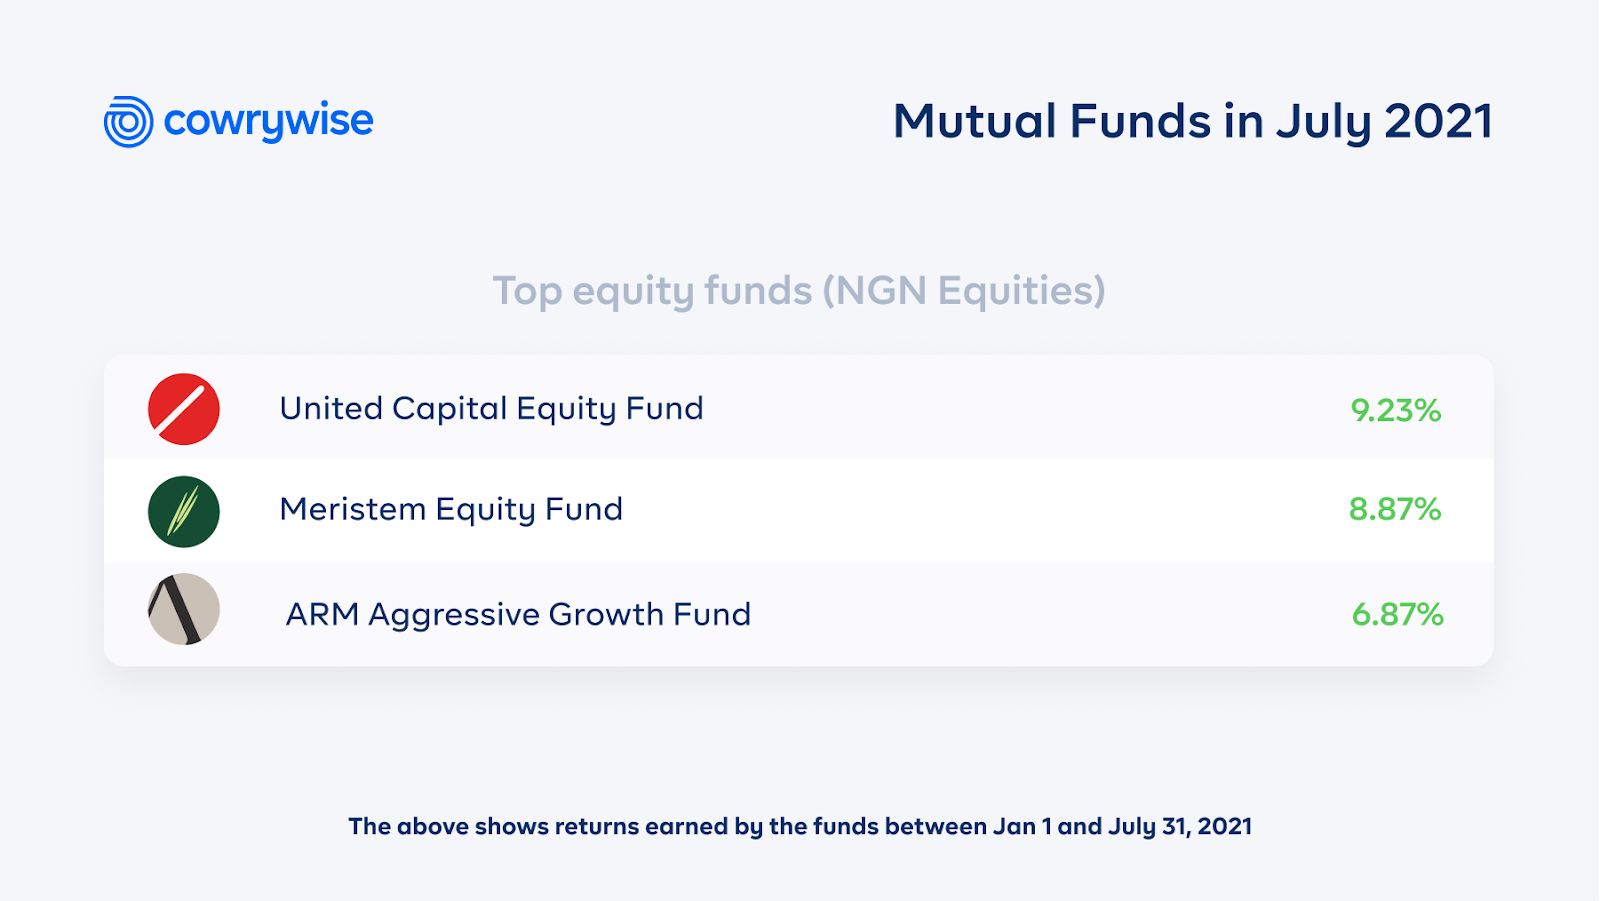 top equity mutual funds (NGN) in July 2021